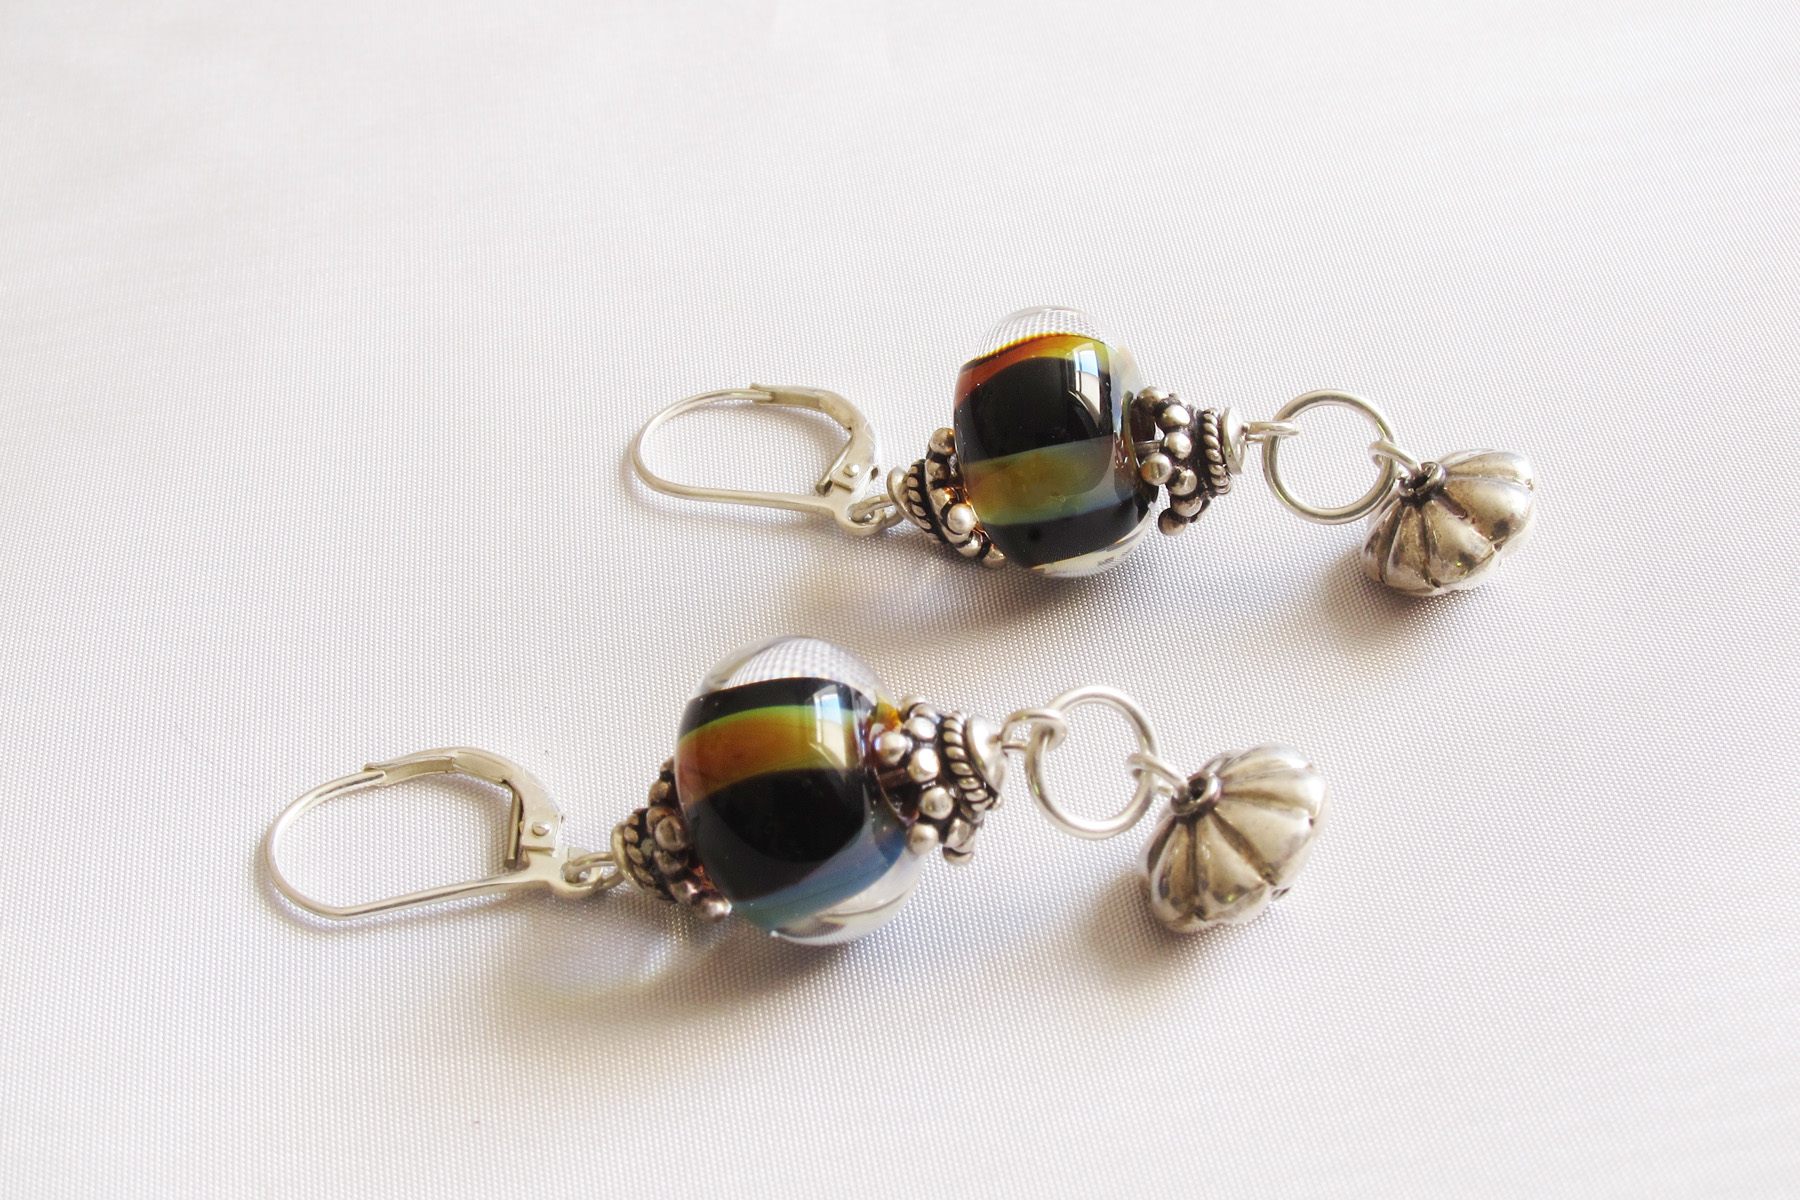 Green Brown Black Stripe Earrings Leverback Drop Earrings